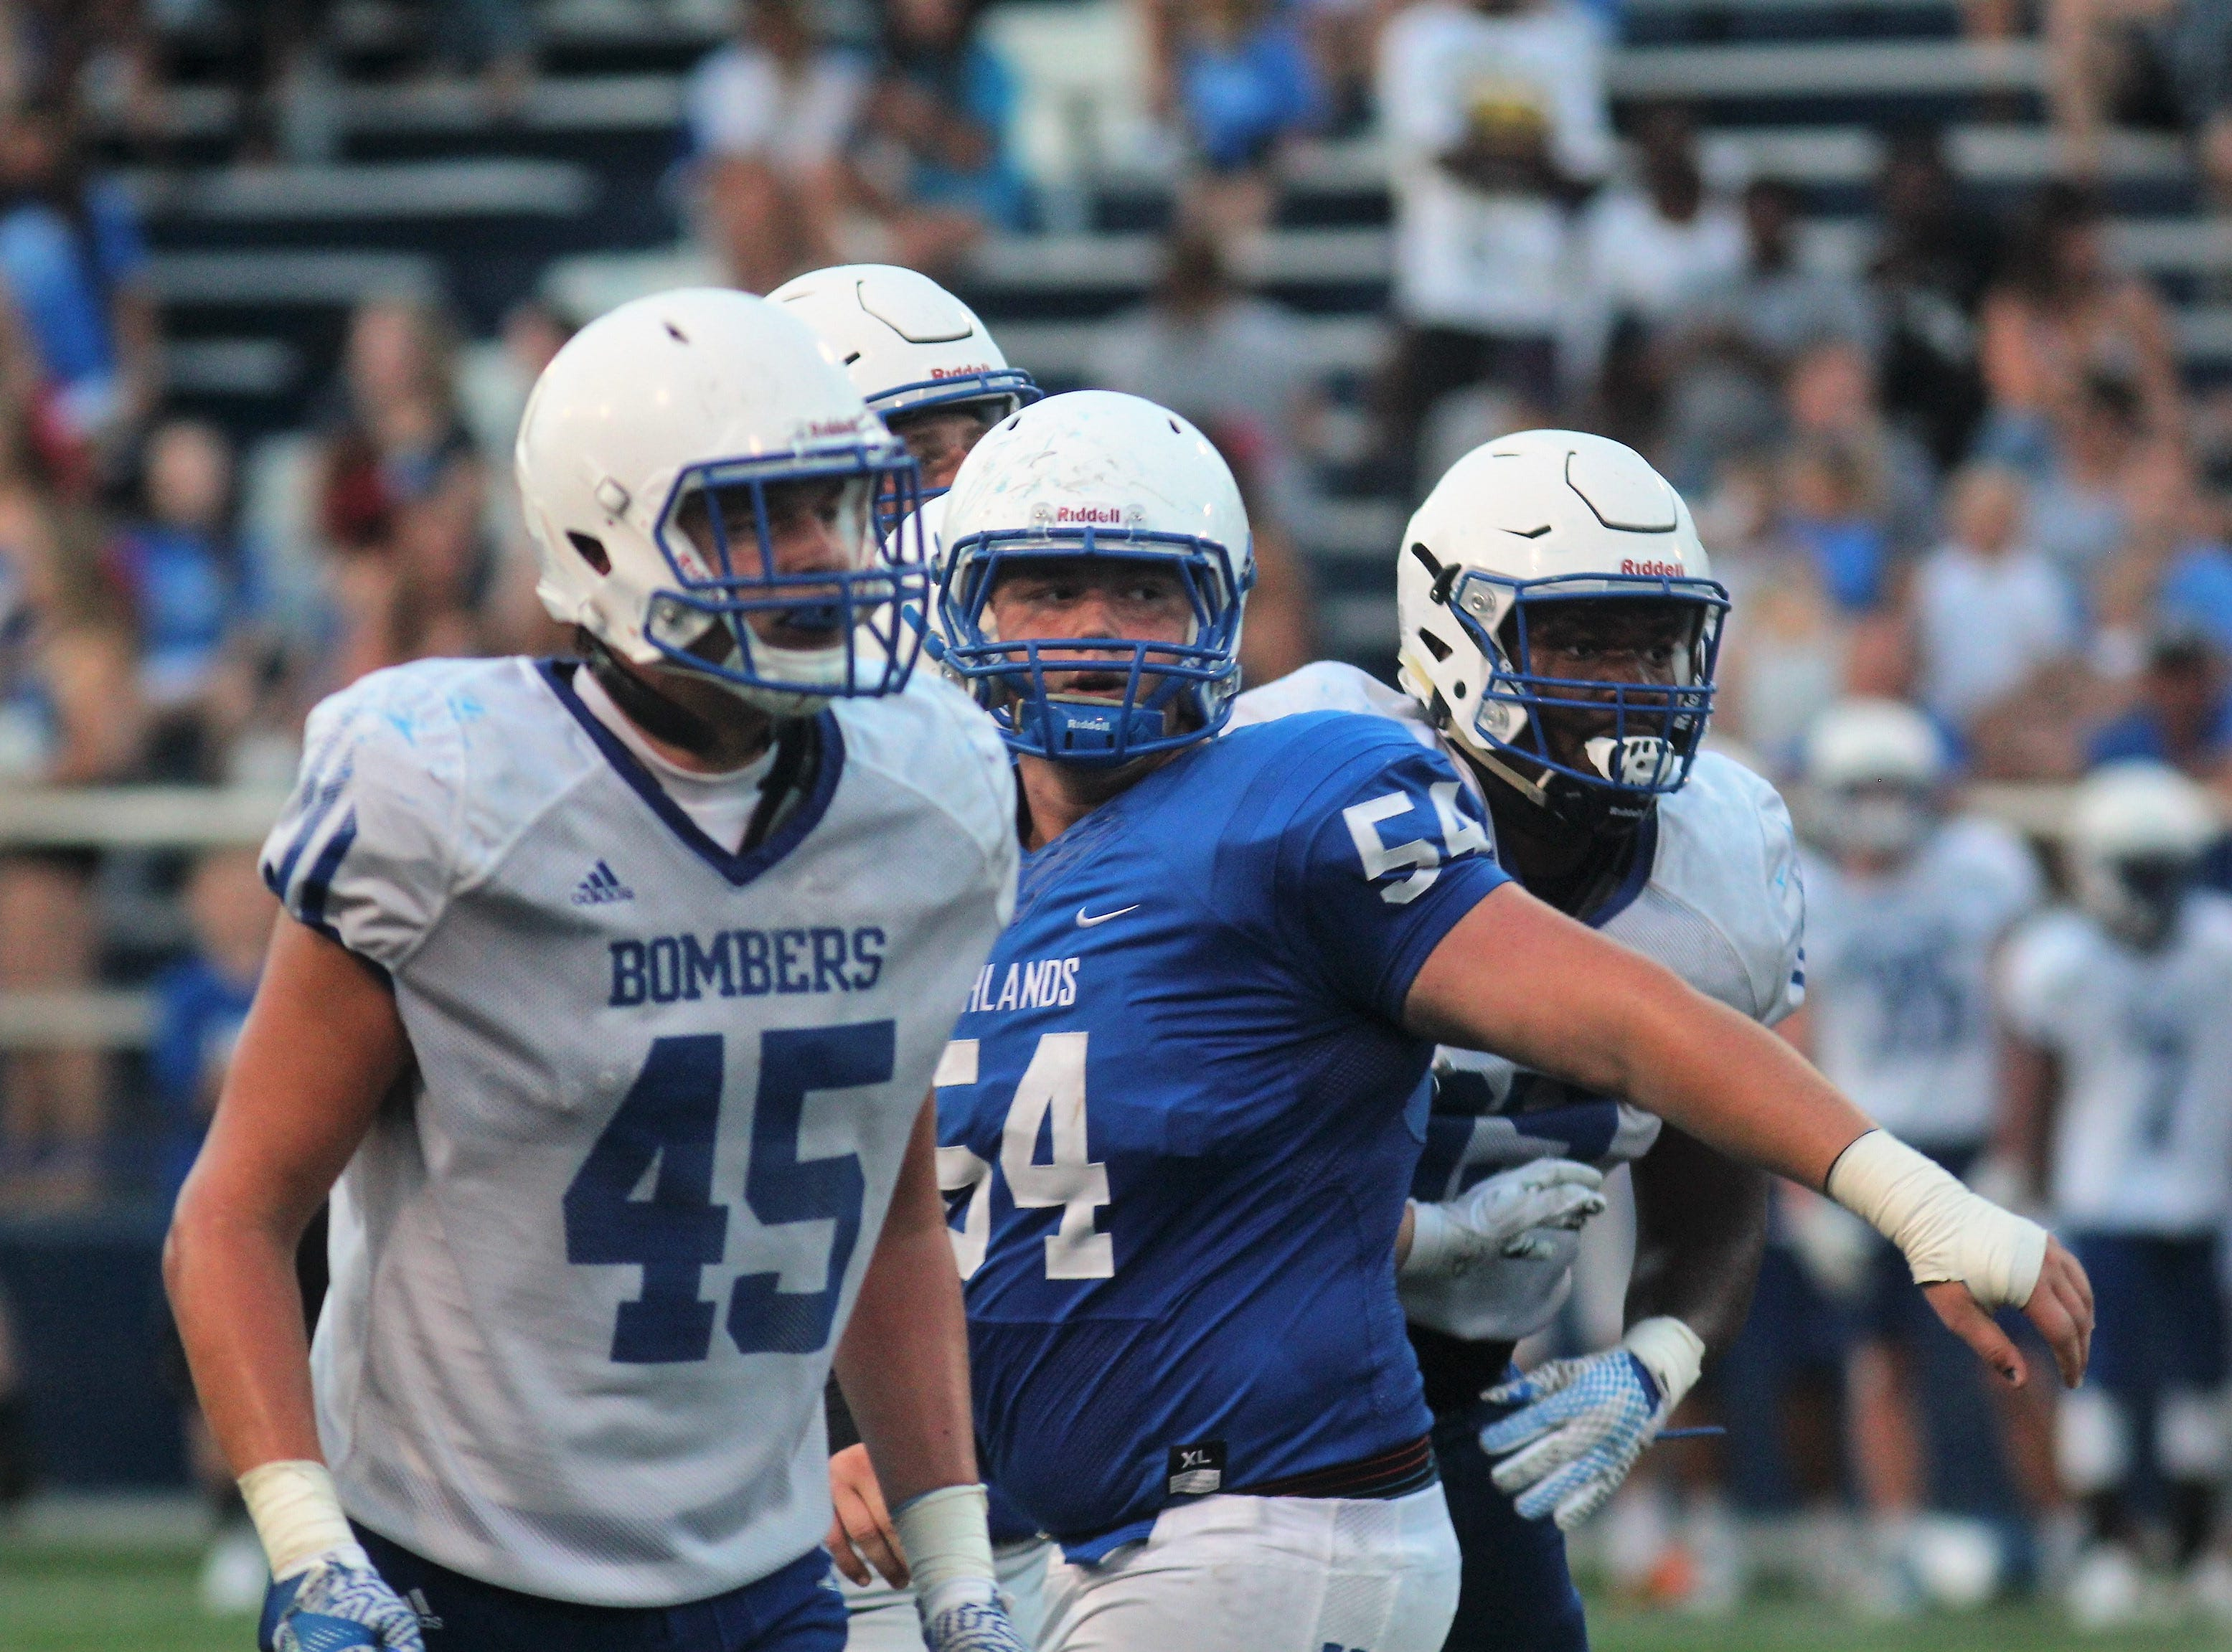 St. Xavier DL Thomas Kiessling looks for the ball. during a football scrimmage featuring the Cincinnati St. Xavier Bombers at Highlands Bluebirds Aug. 11, 2017. St. X won 38-3.